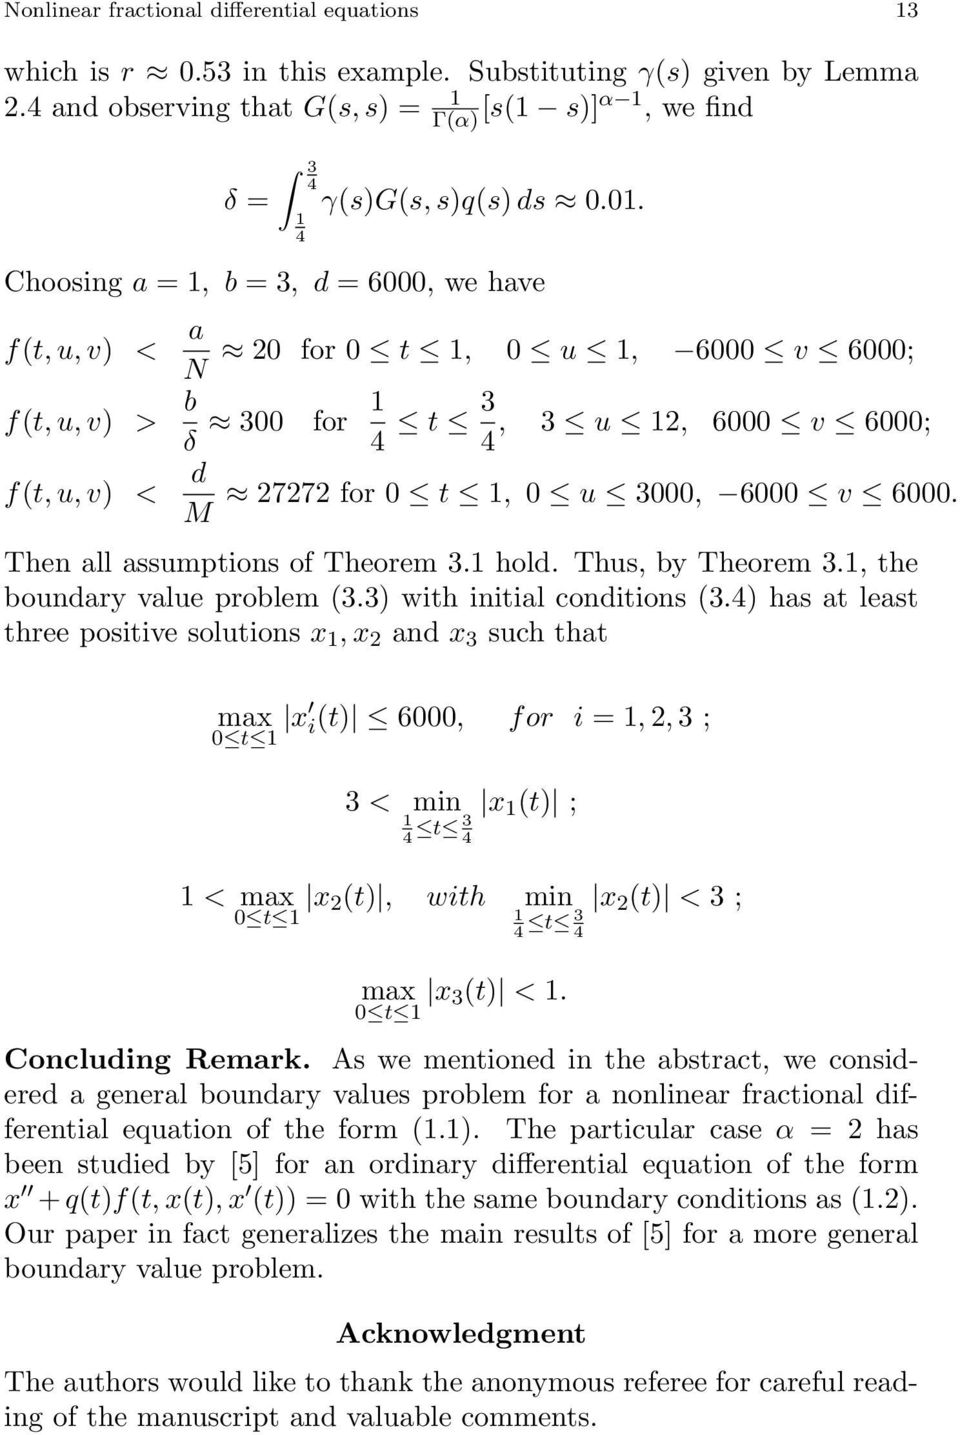 Thus, by Theorem 3., the boundary value problem (3.3) with initial conditions (3.